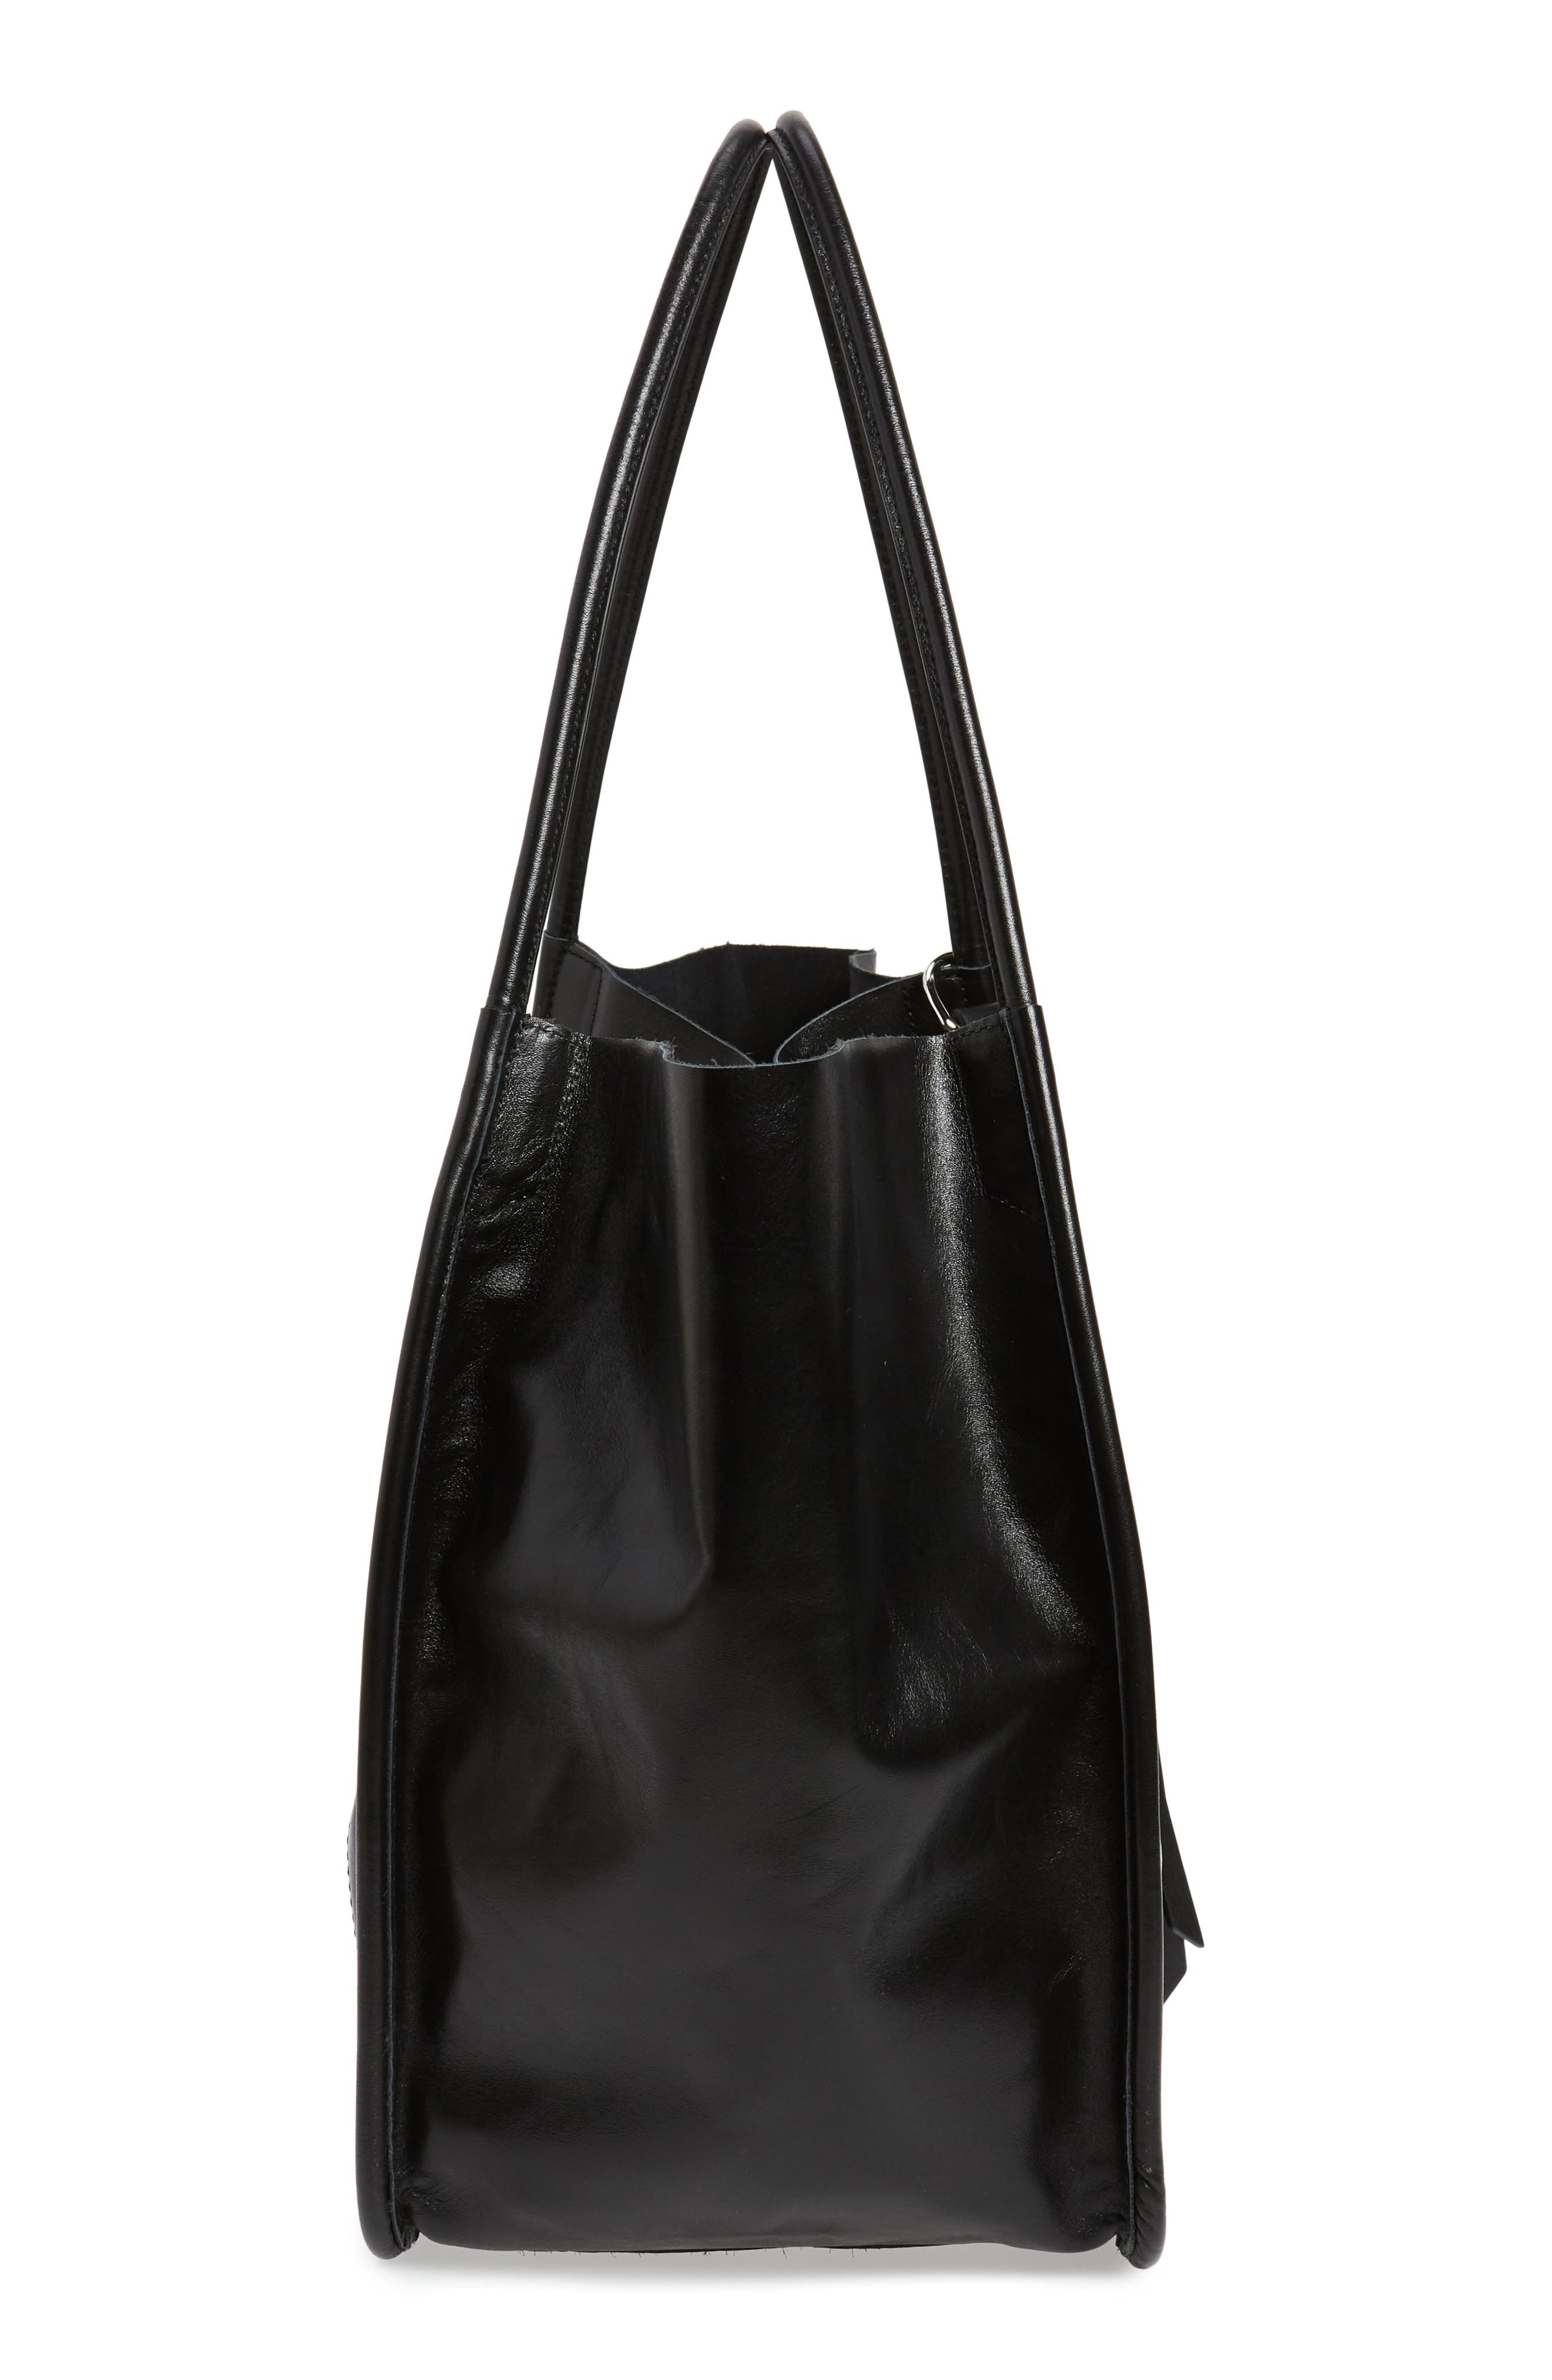 PROENZA SCHOULER, Large Calfskin Leather Tote, Alternate thumbnail 5, color, BLACK